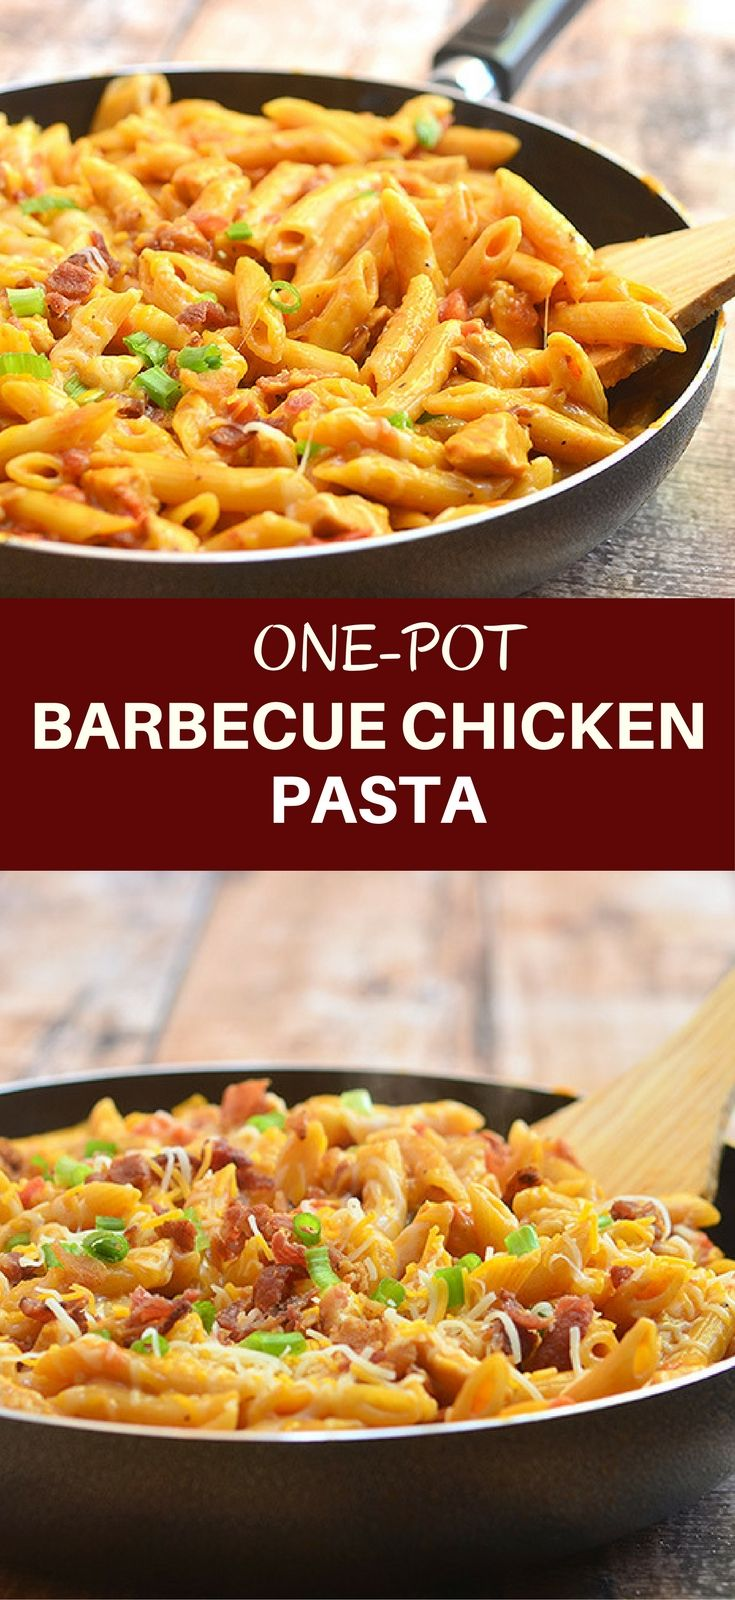 One-Pot Barbecue Chicken Pasta loaded with bacon, chicken, cheese, and BBQ flavors cooked in one pot! Easy, cheesy, and absolutely tasty, it's the perfect weeknight meal!